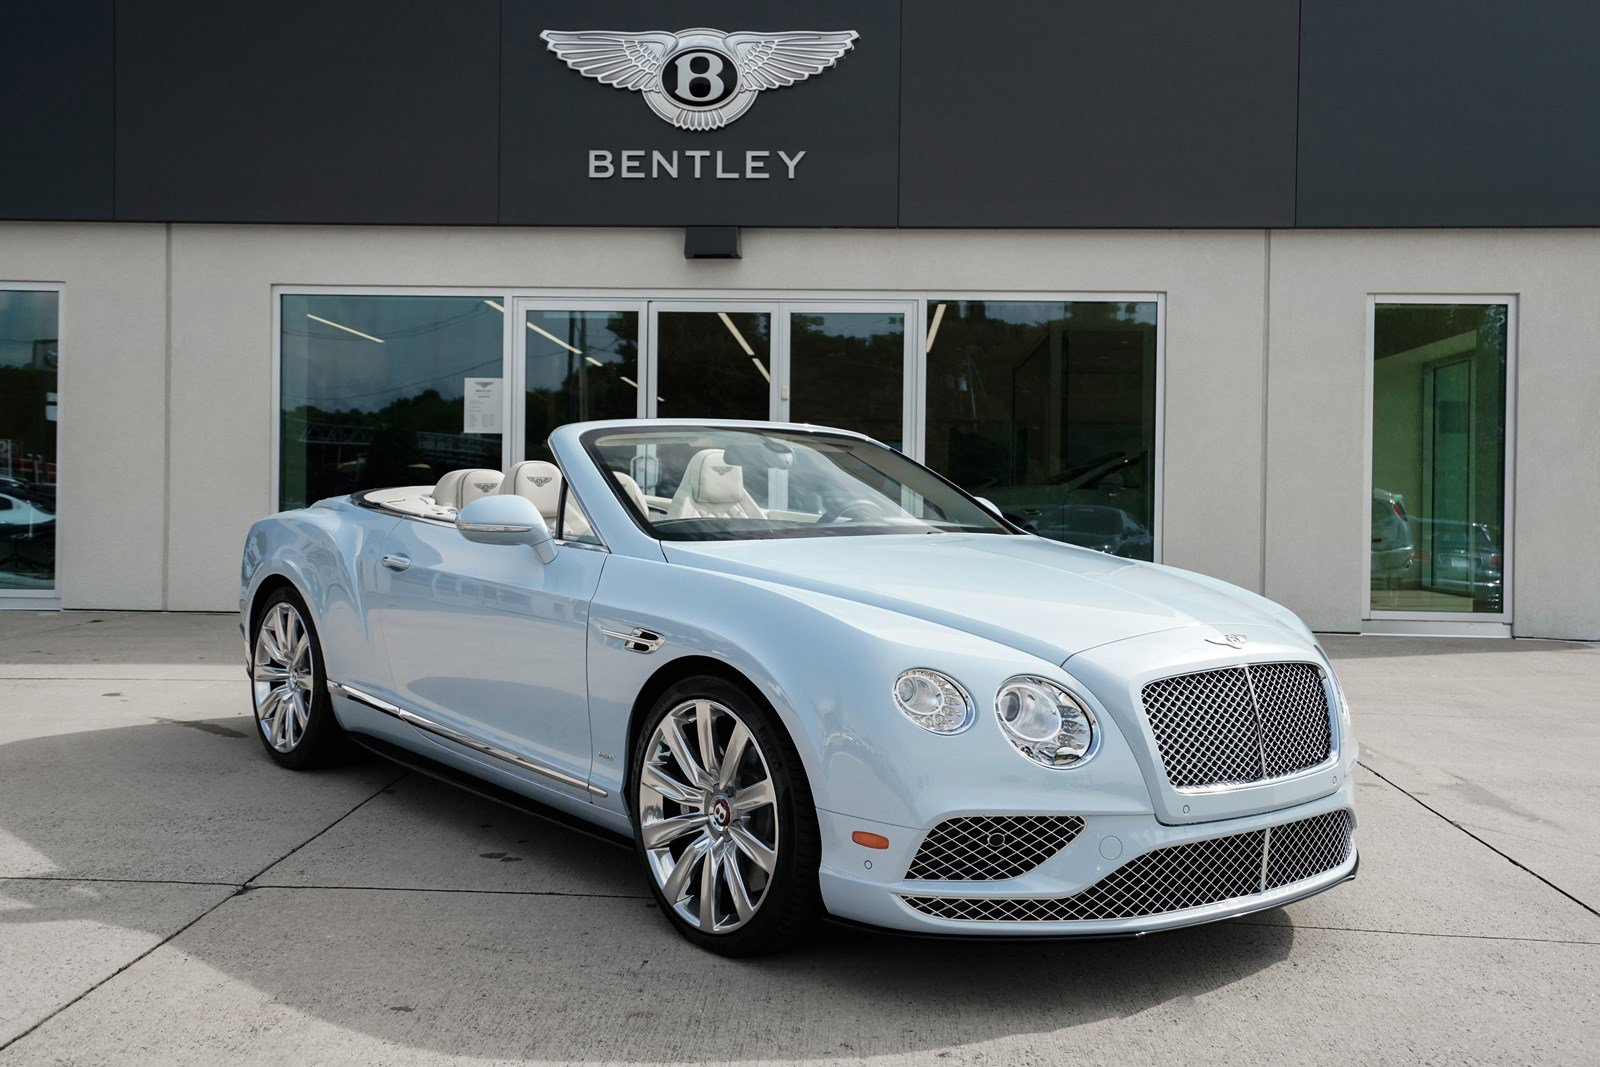 2016 Bentley Continental GT V8 S Convertible image